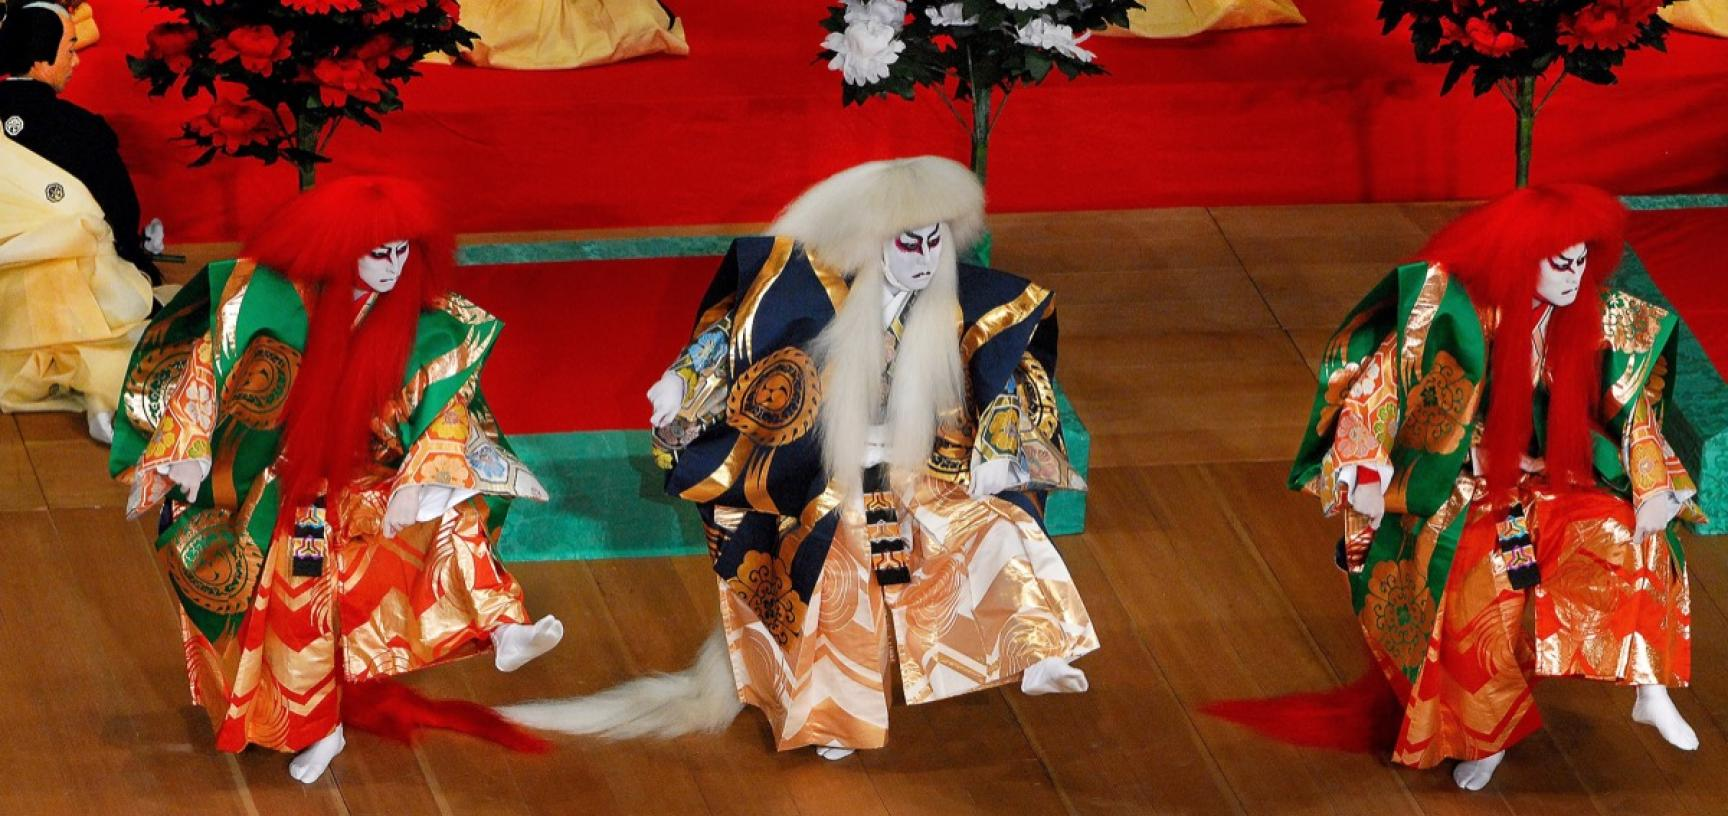 Scene from the play Renjishi, in which a pair of comic actors wearing lion costumes, Sakon and his son Ukon, are transformed into the living spirits of those lions. Here the celebrated actor Nakamura Kanzaburō XVIII, playing the white-maned father lion, i